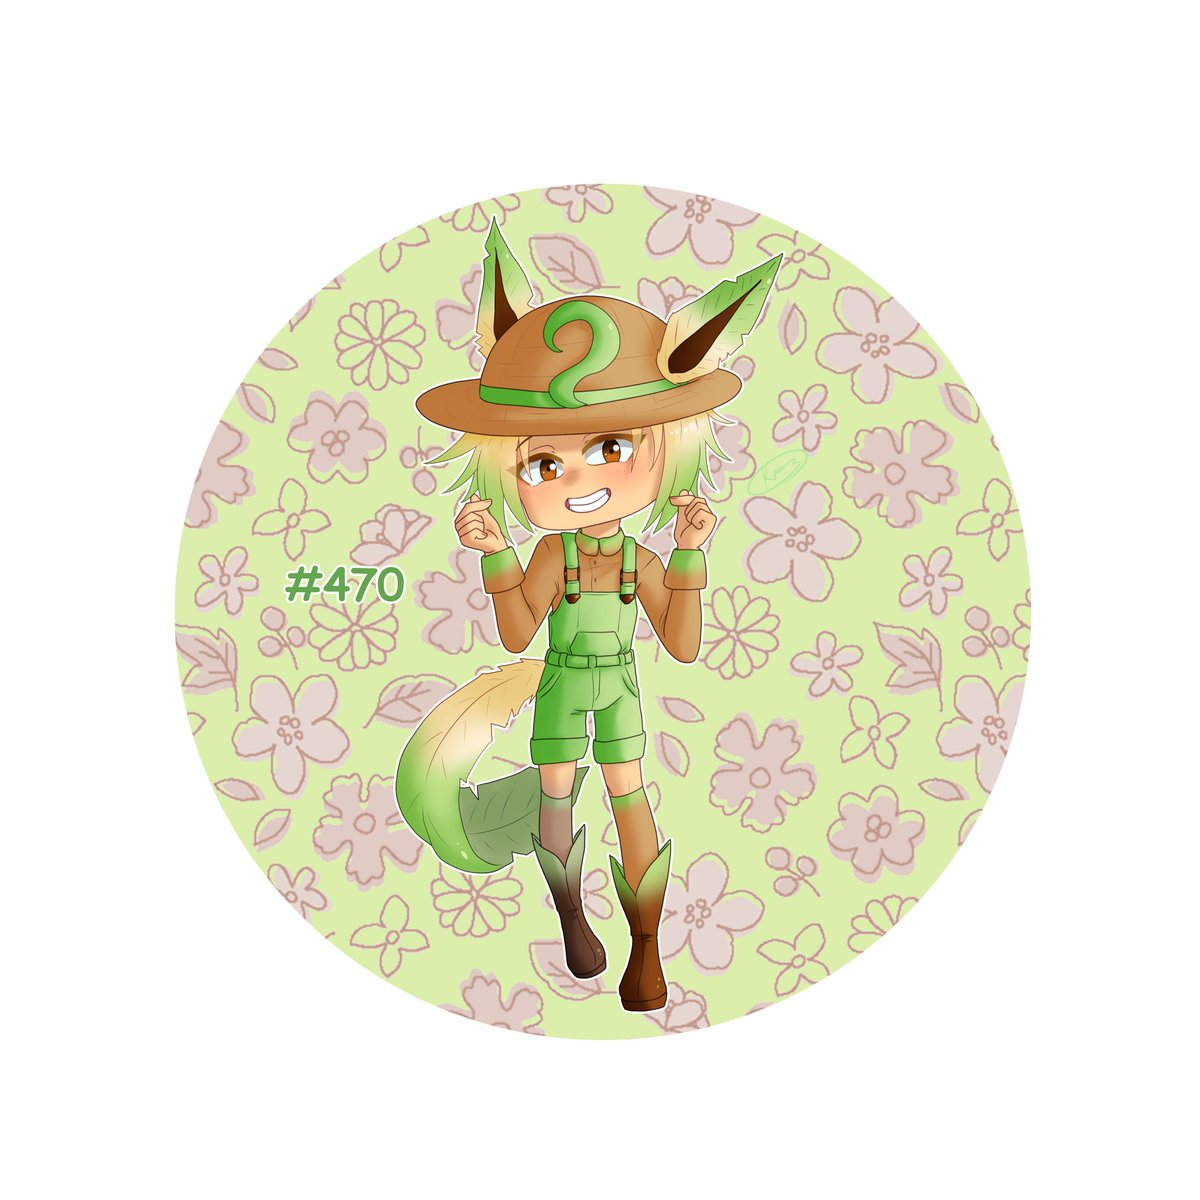 I positively adore how leafeon turned out y'all. Cute little gardener boy~ #rxyoc #oc #originalcharacter #digitalart #animestyleart #mangastyleart #art #chibi #pokemon #personification #eevee #eeveelution #leafeon #animeboy #cutepic.twitter.com/3PTVil2fDd